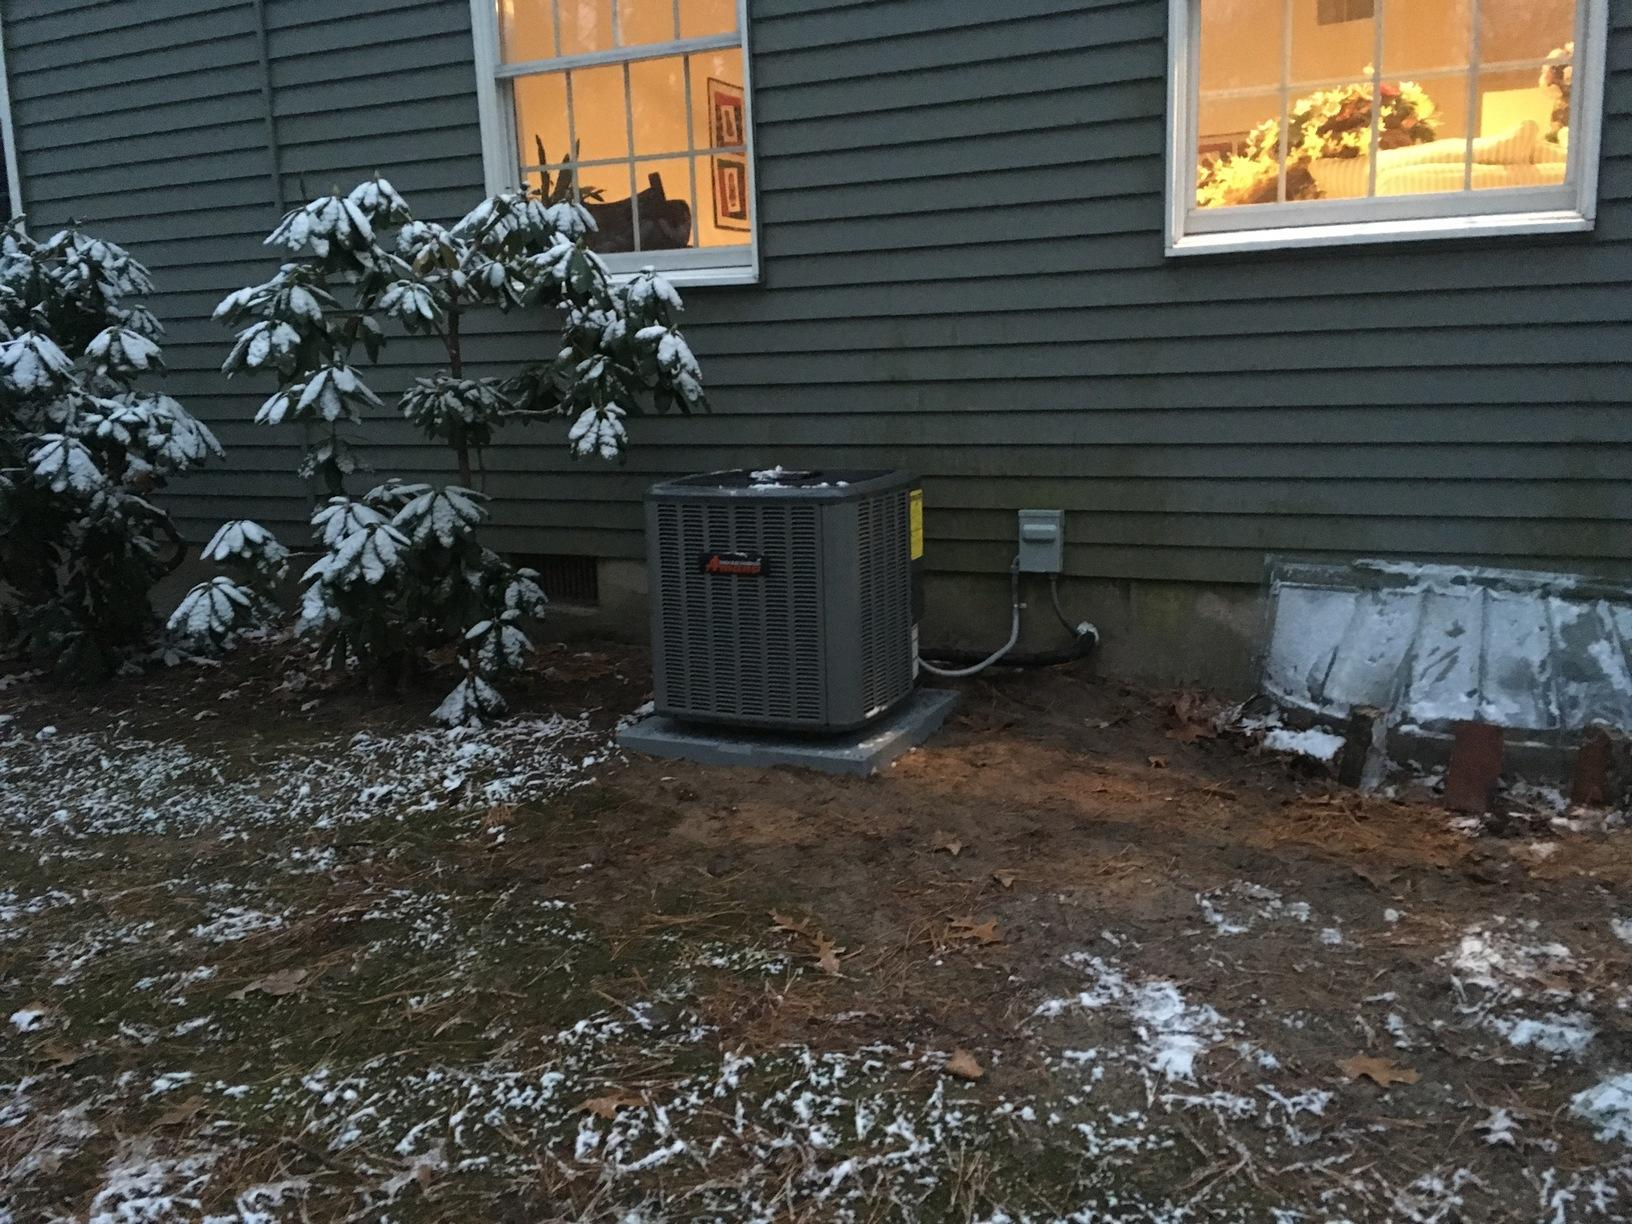 High Efficiency Amana Air Conditioning in Medford, NJ 08055 - After Photo